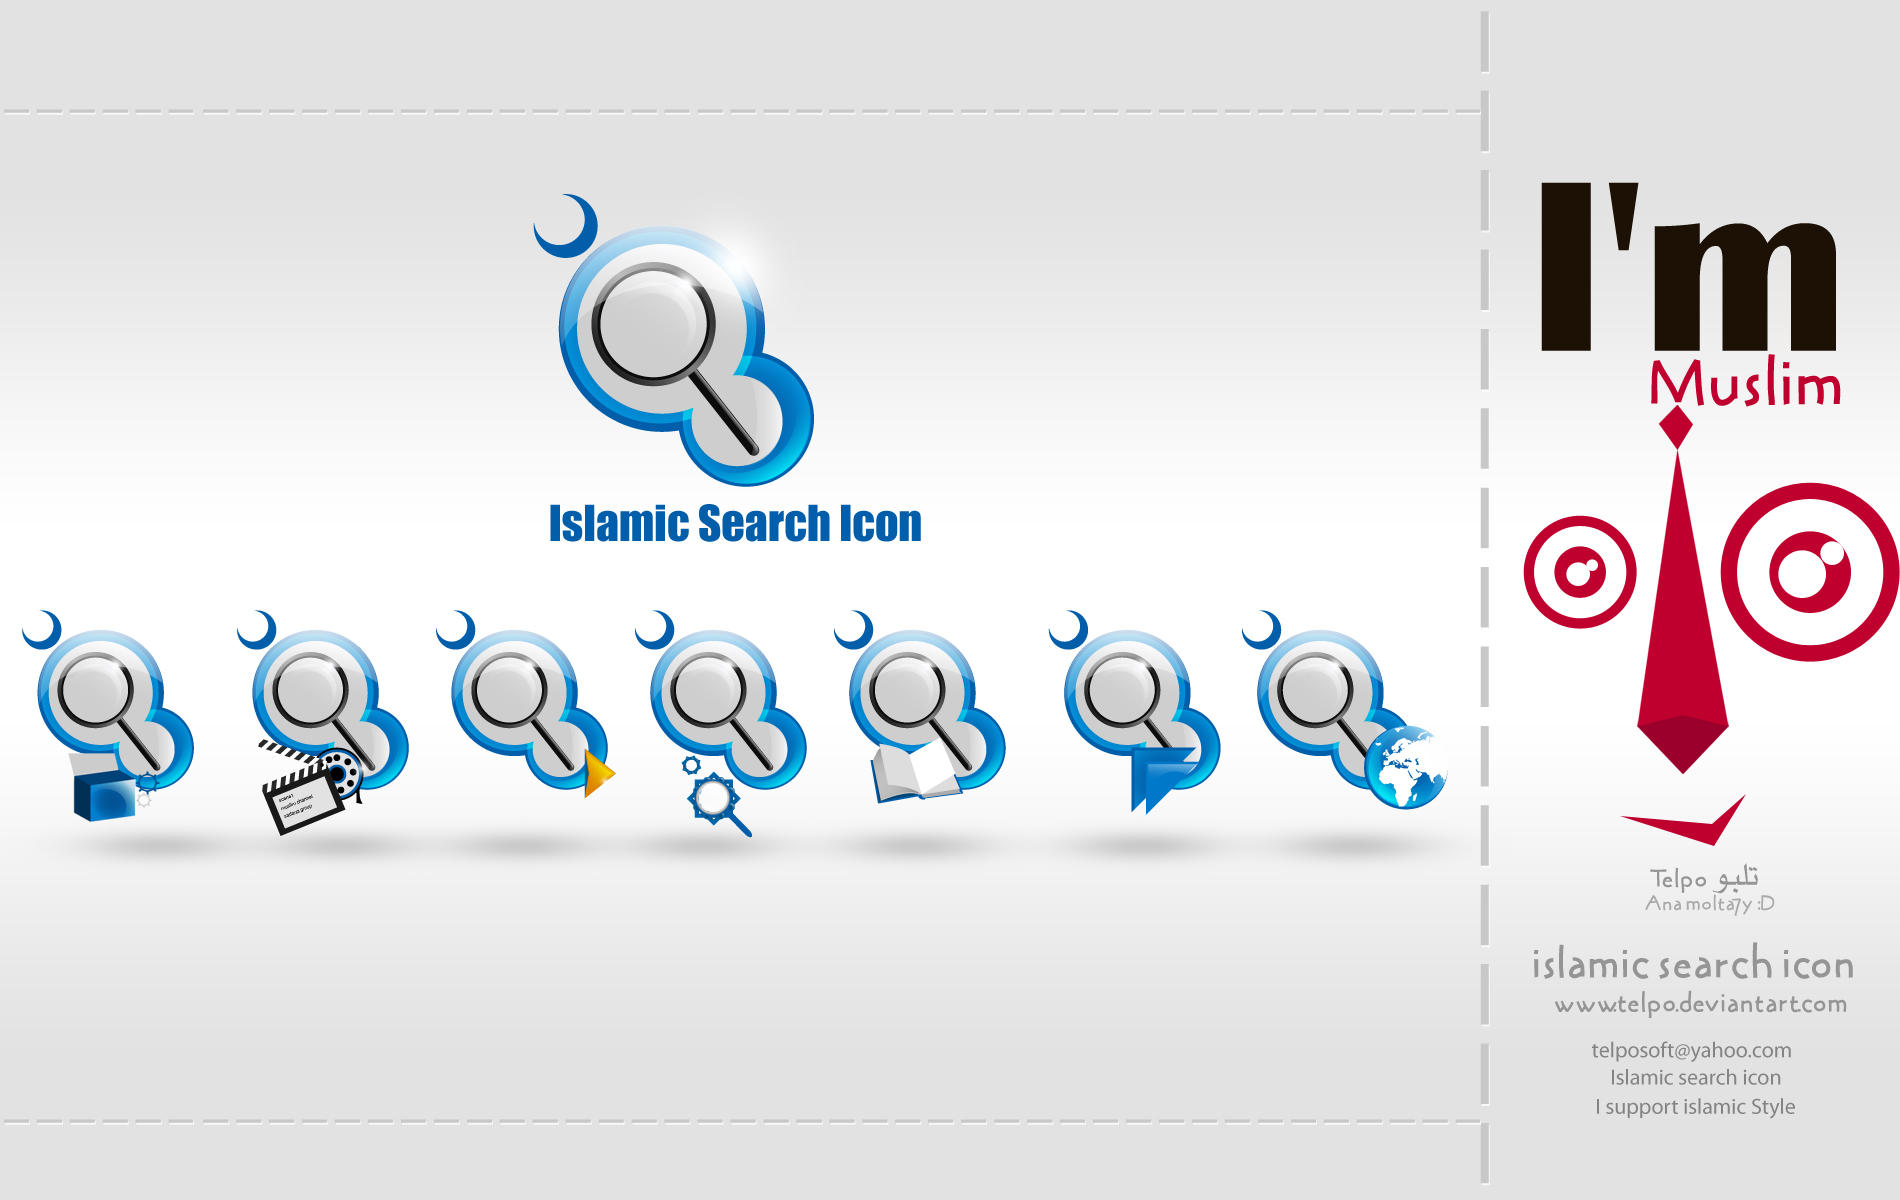 Islamic Search Icon by Telpo